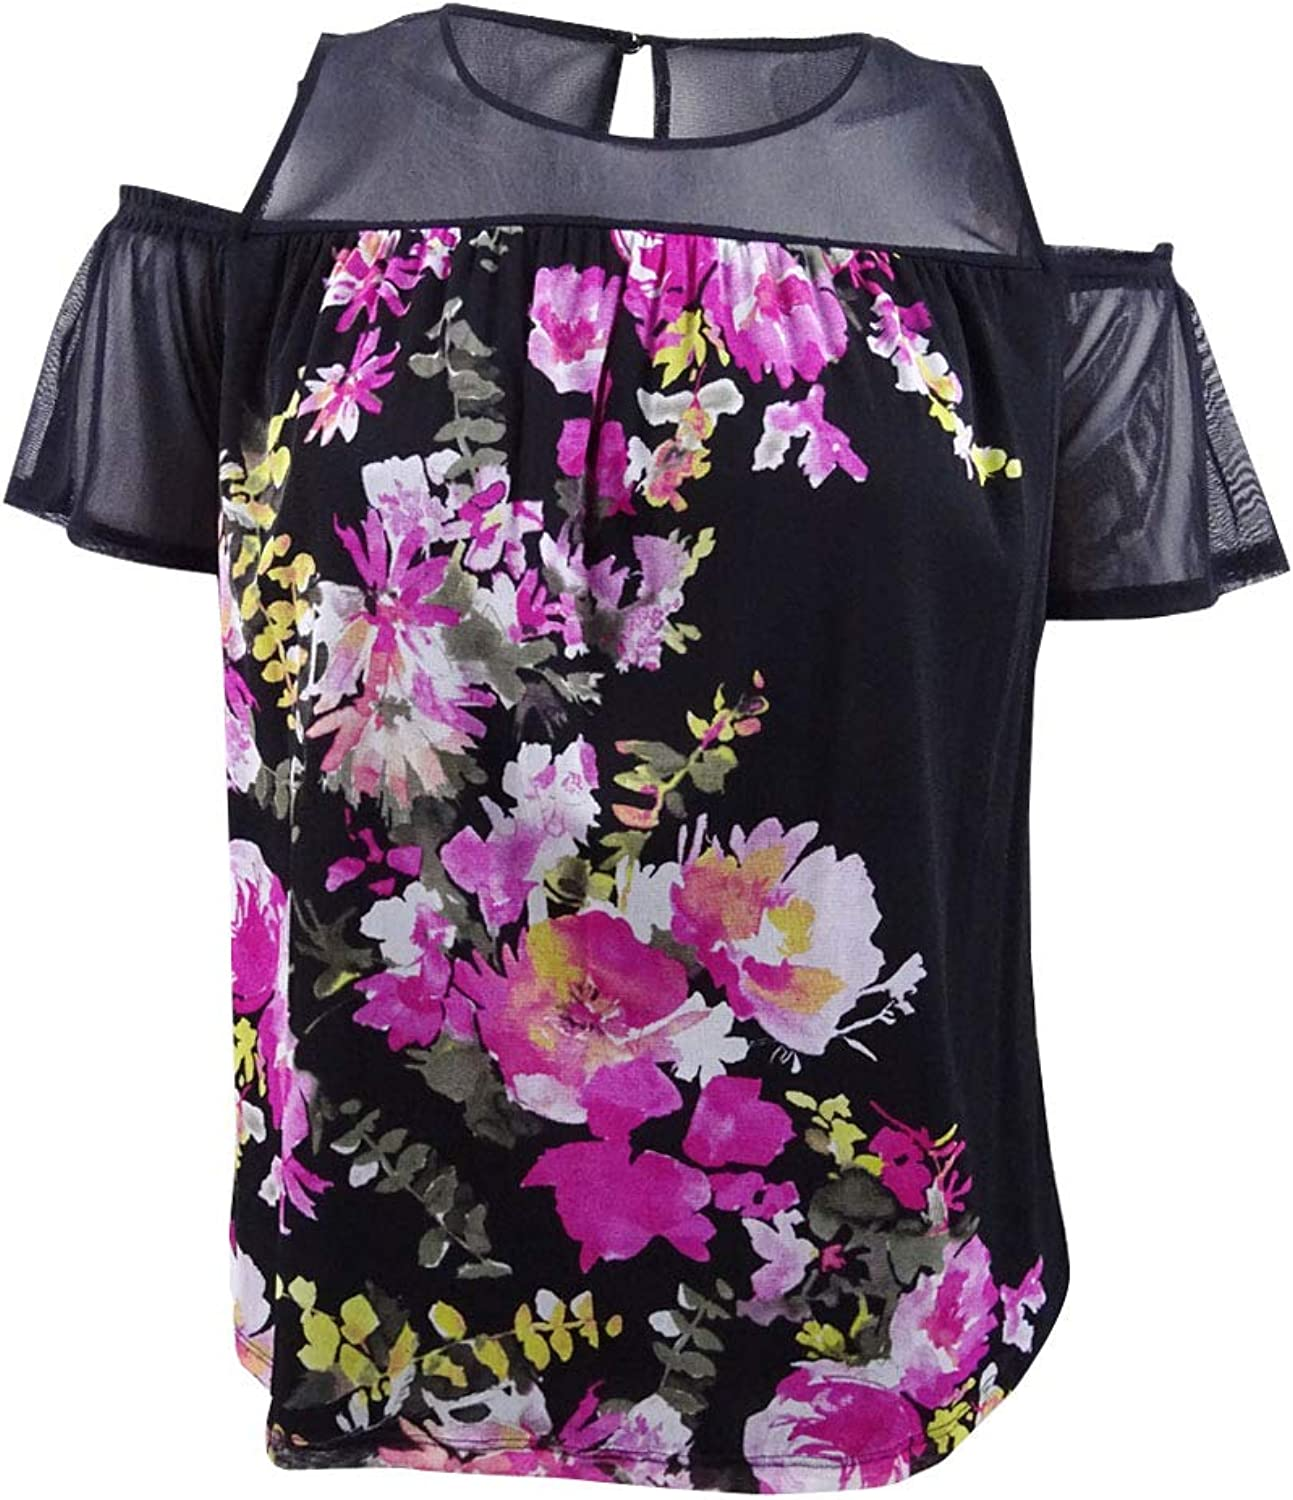 Inc Womens Plus Floral Print Cold Shoulder Blouse